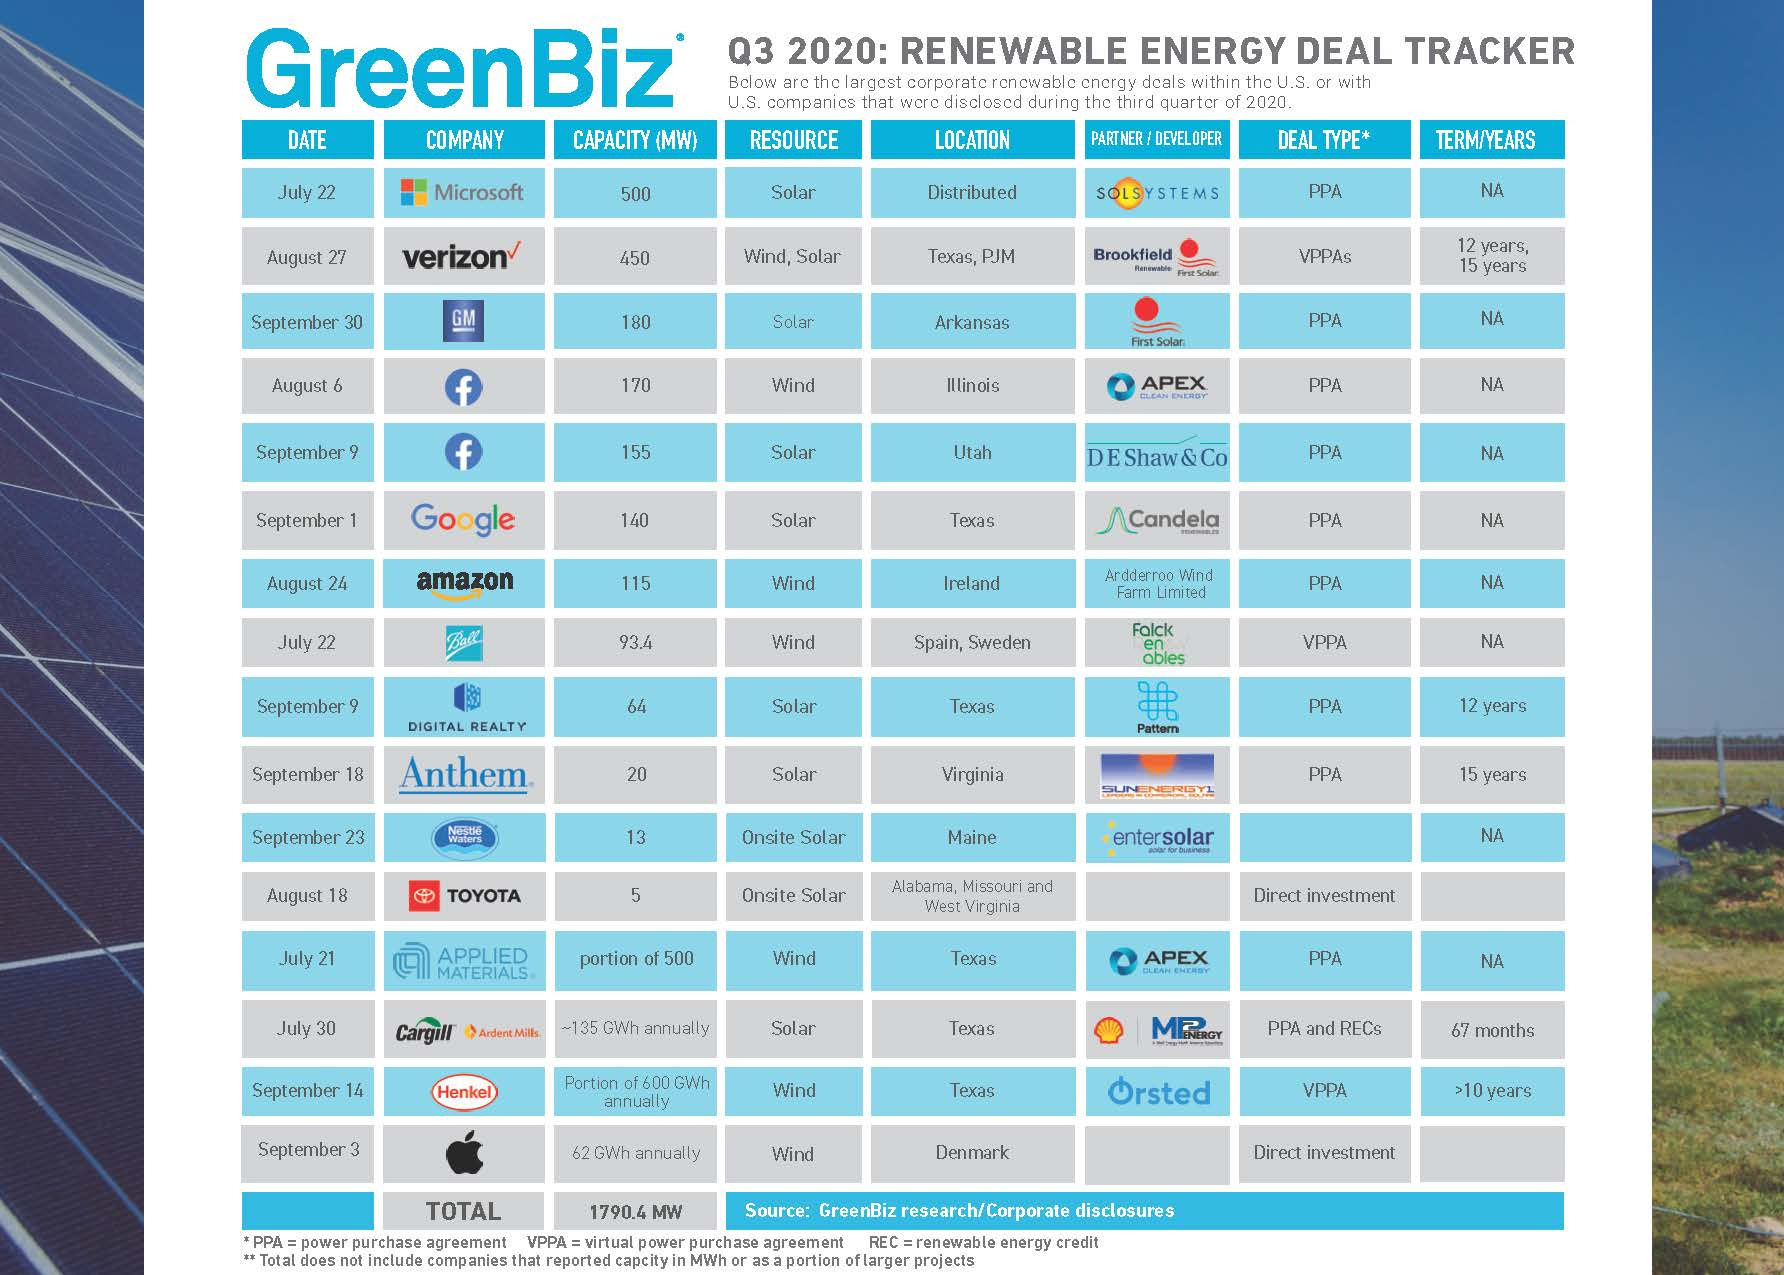 Q3 2020 Clean Energy Tracker